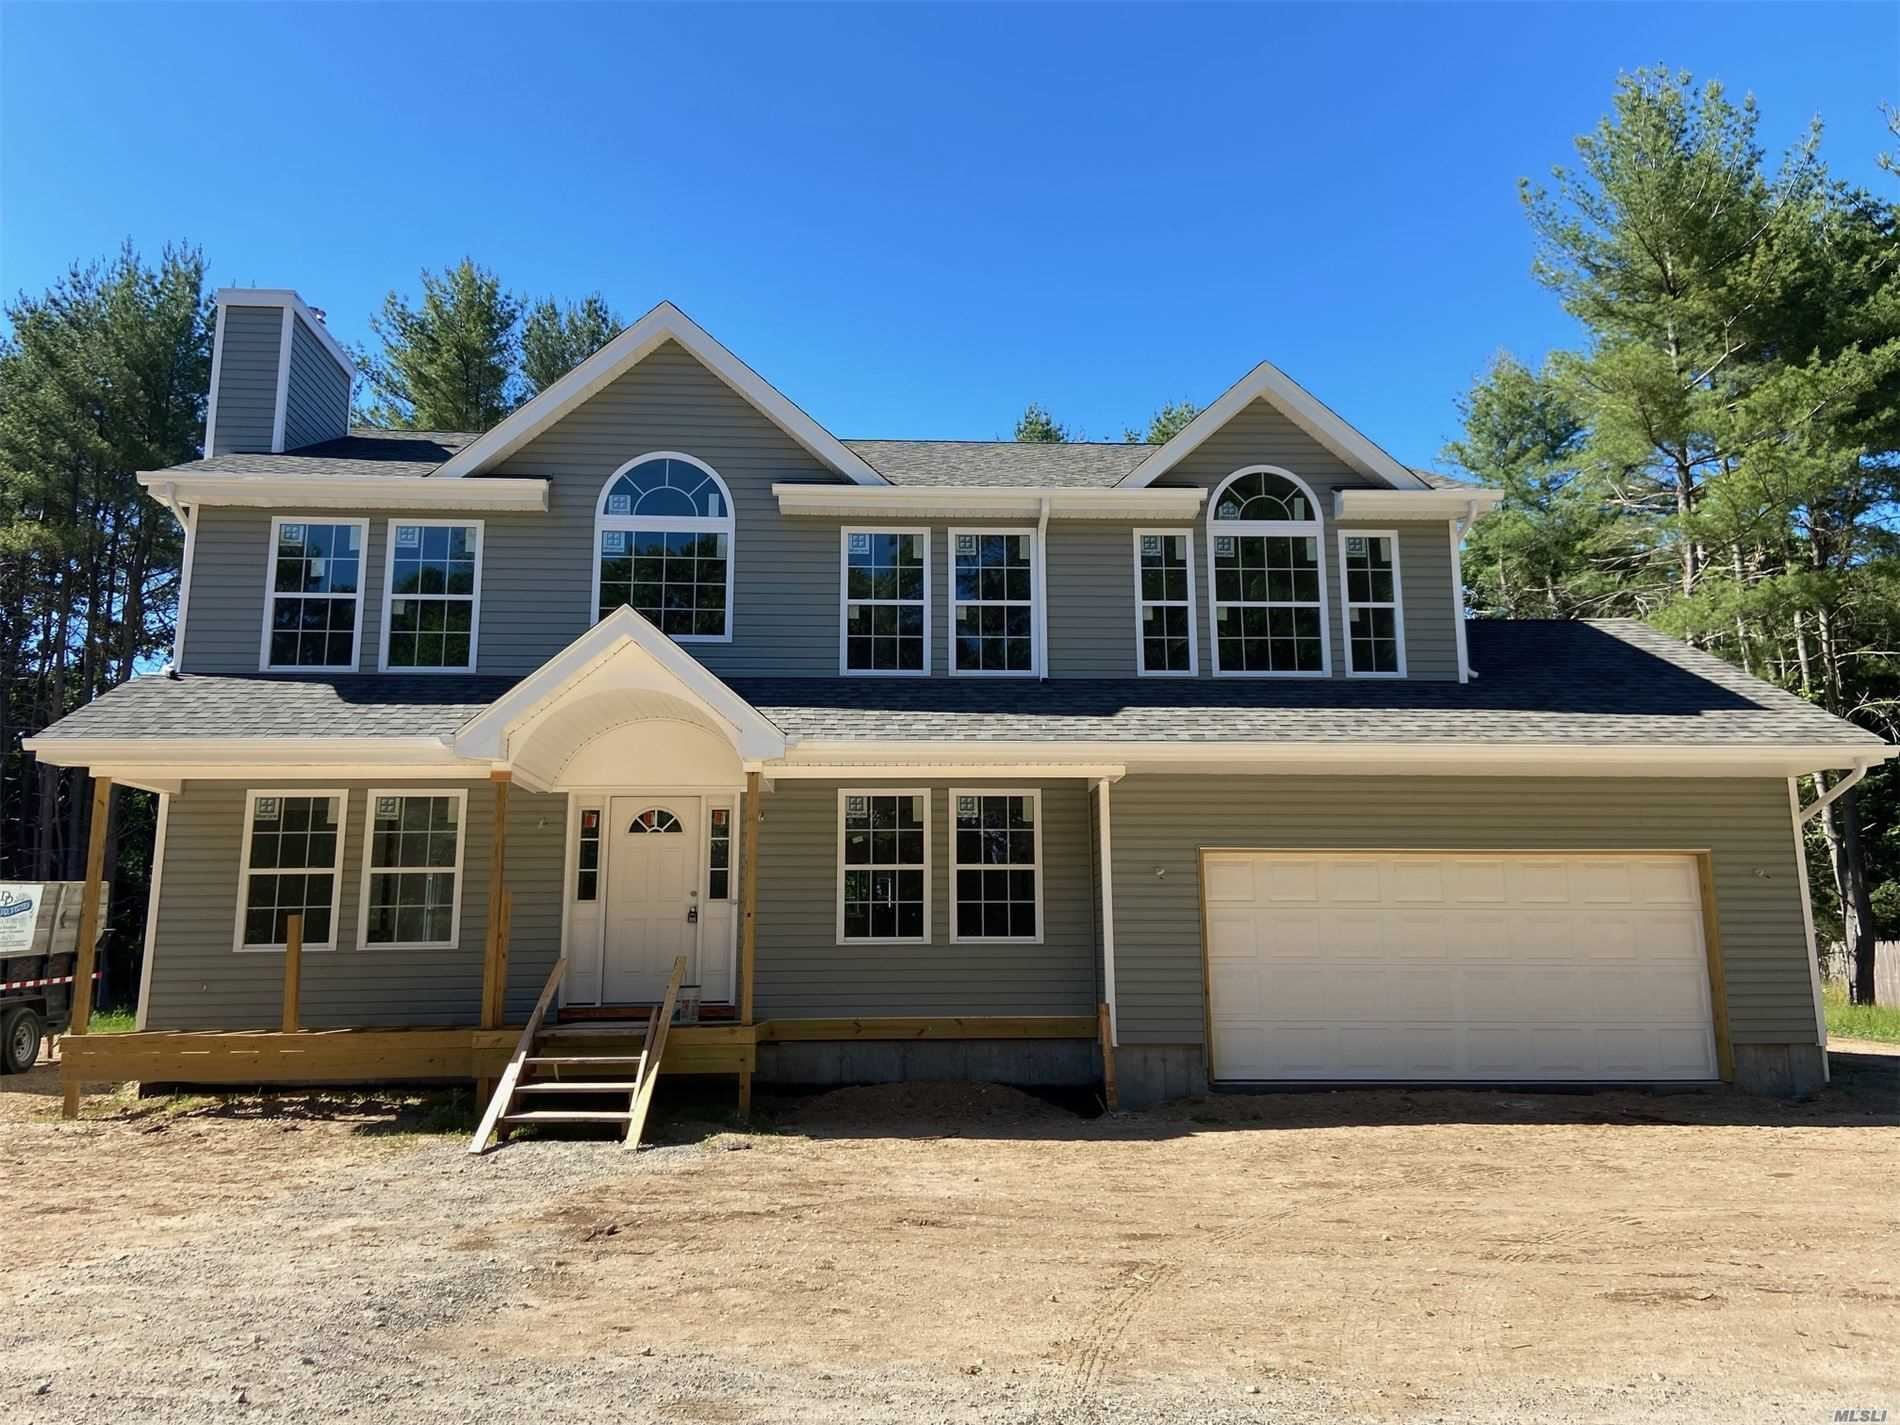 34 Middle Isl Blvd, Middle Island, NY 11953 - MLS#: 3193504